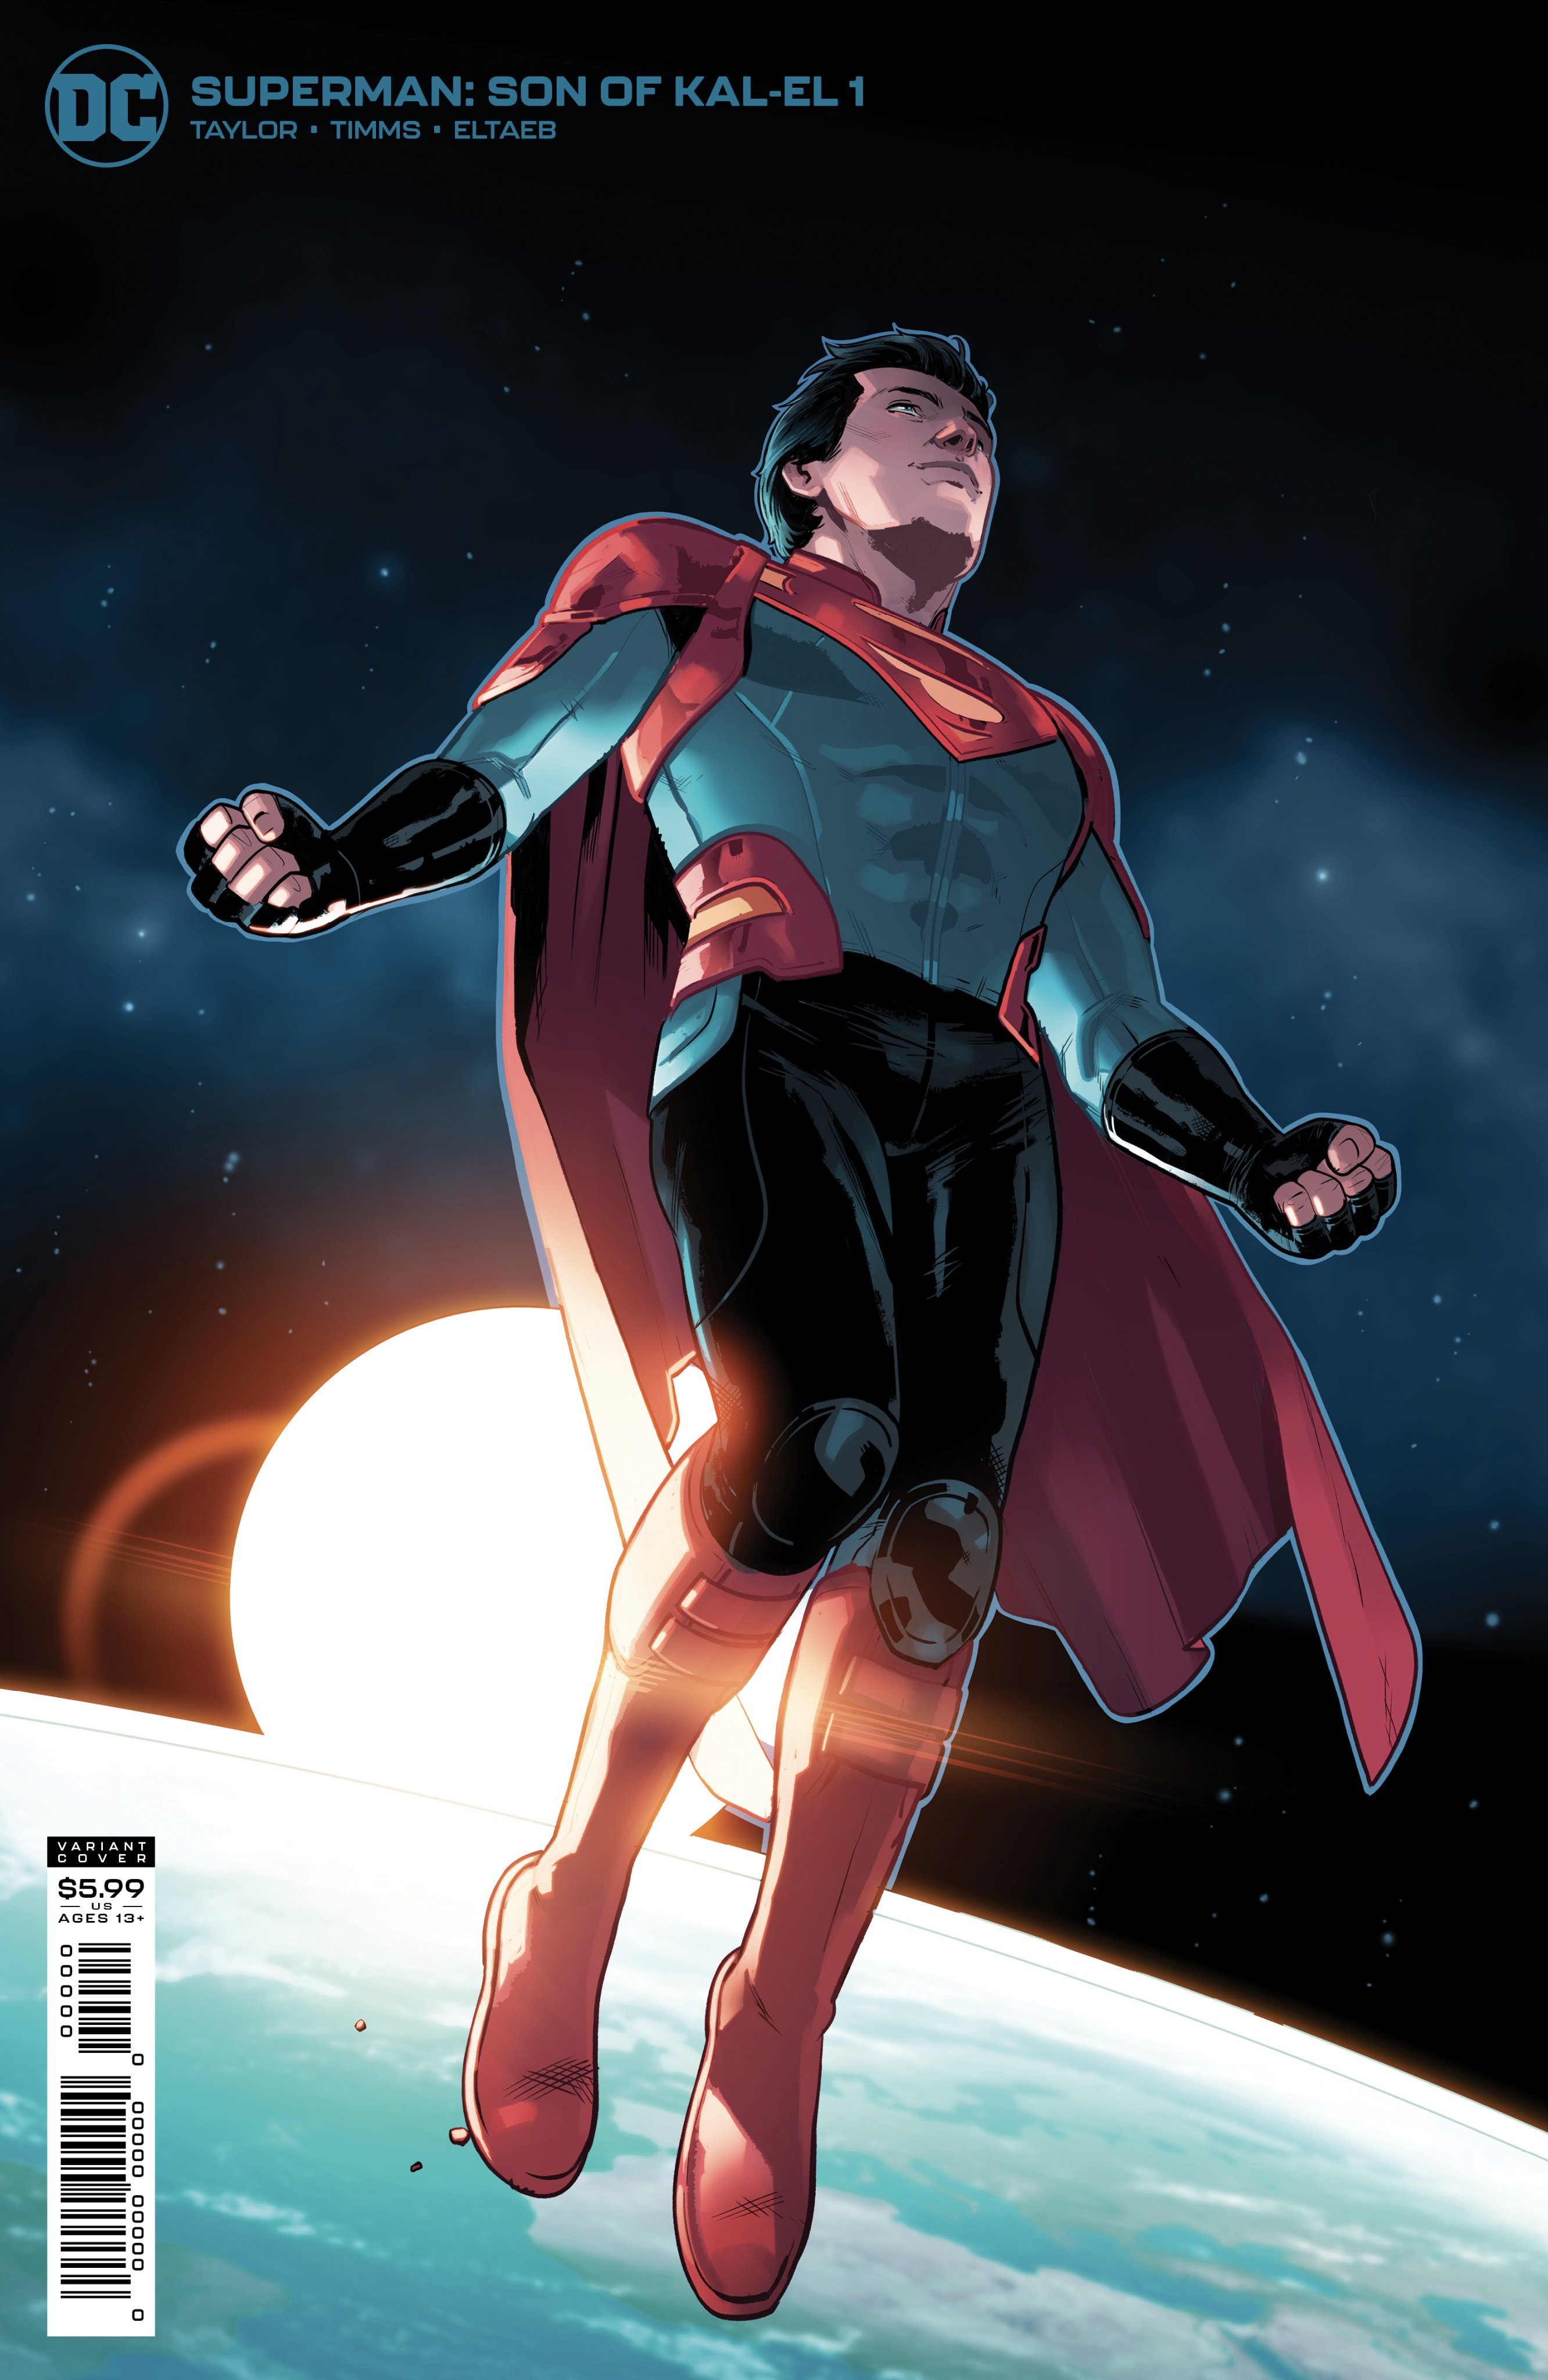 Superman Son of Kal-El Issue One Variant Cover: Steven Bryne